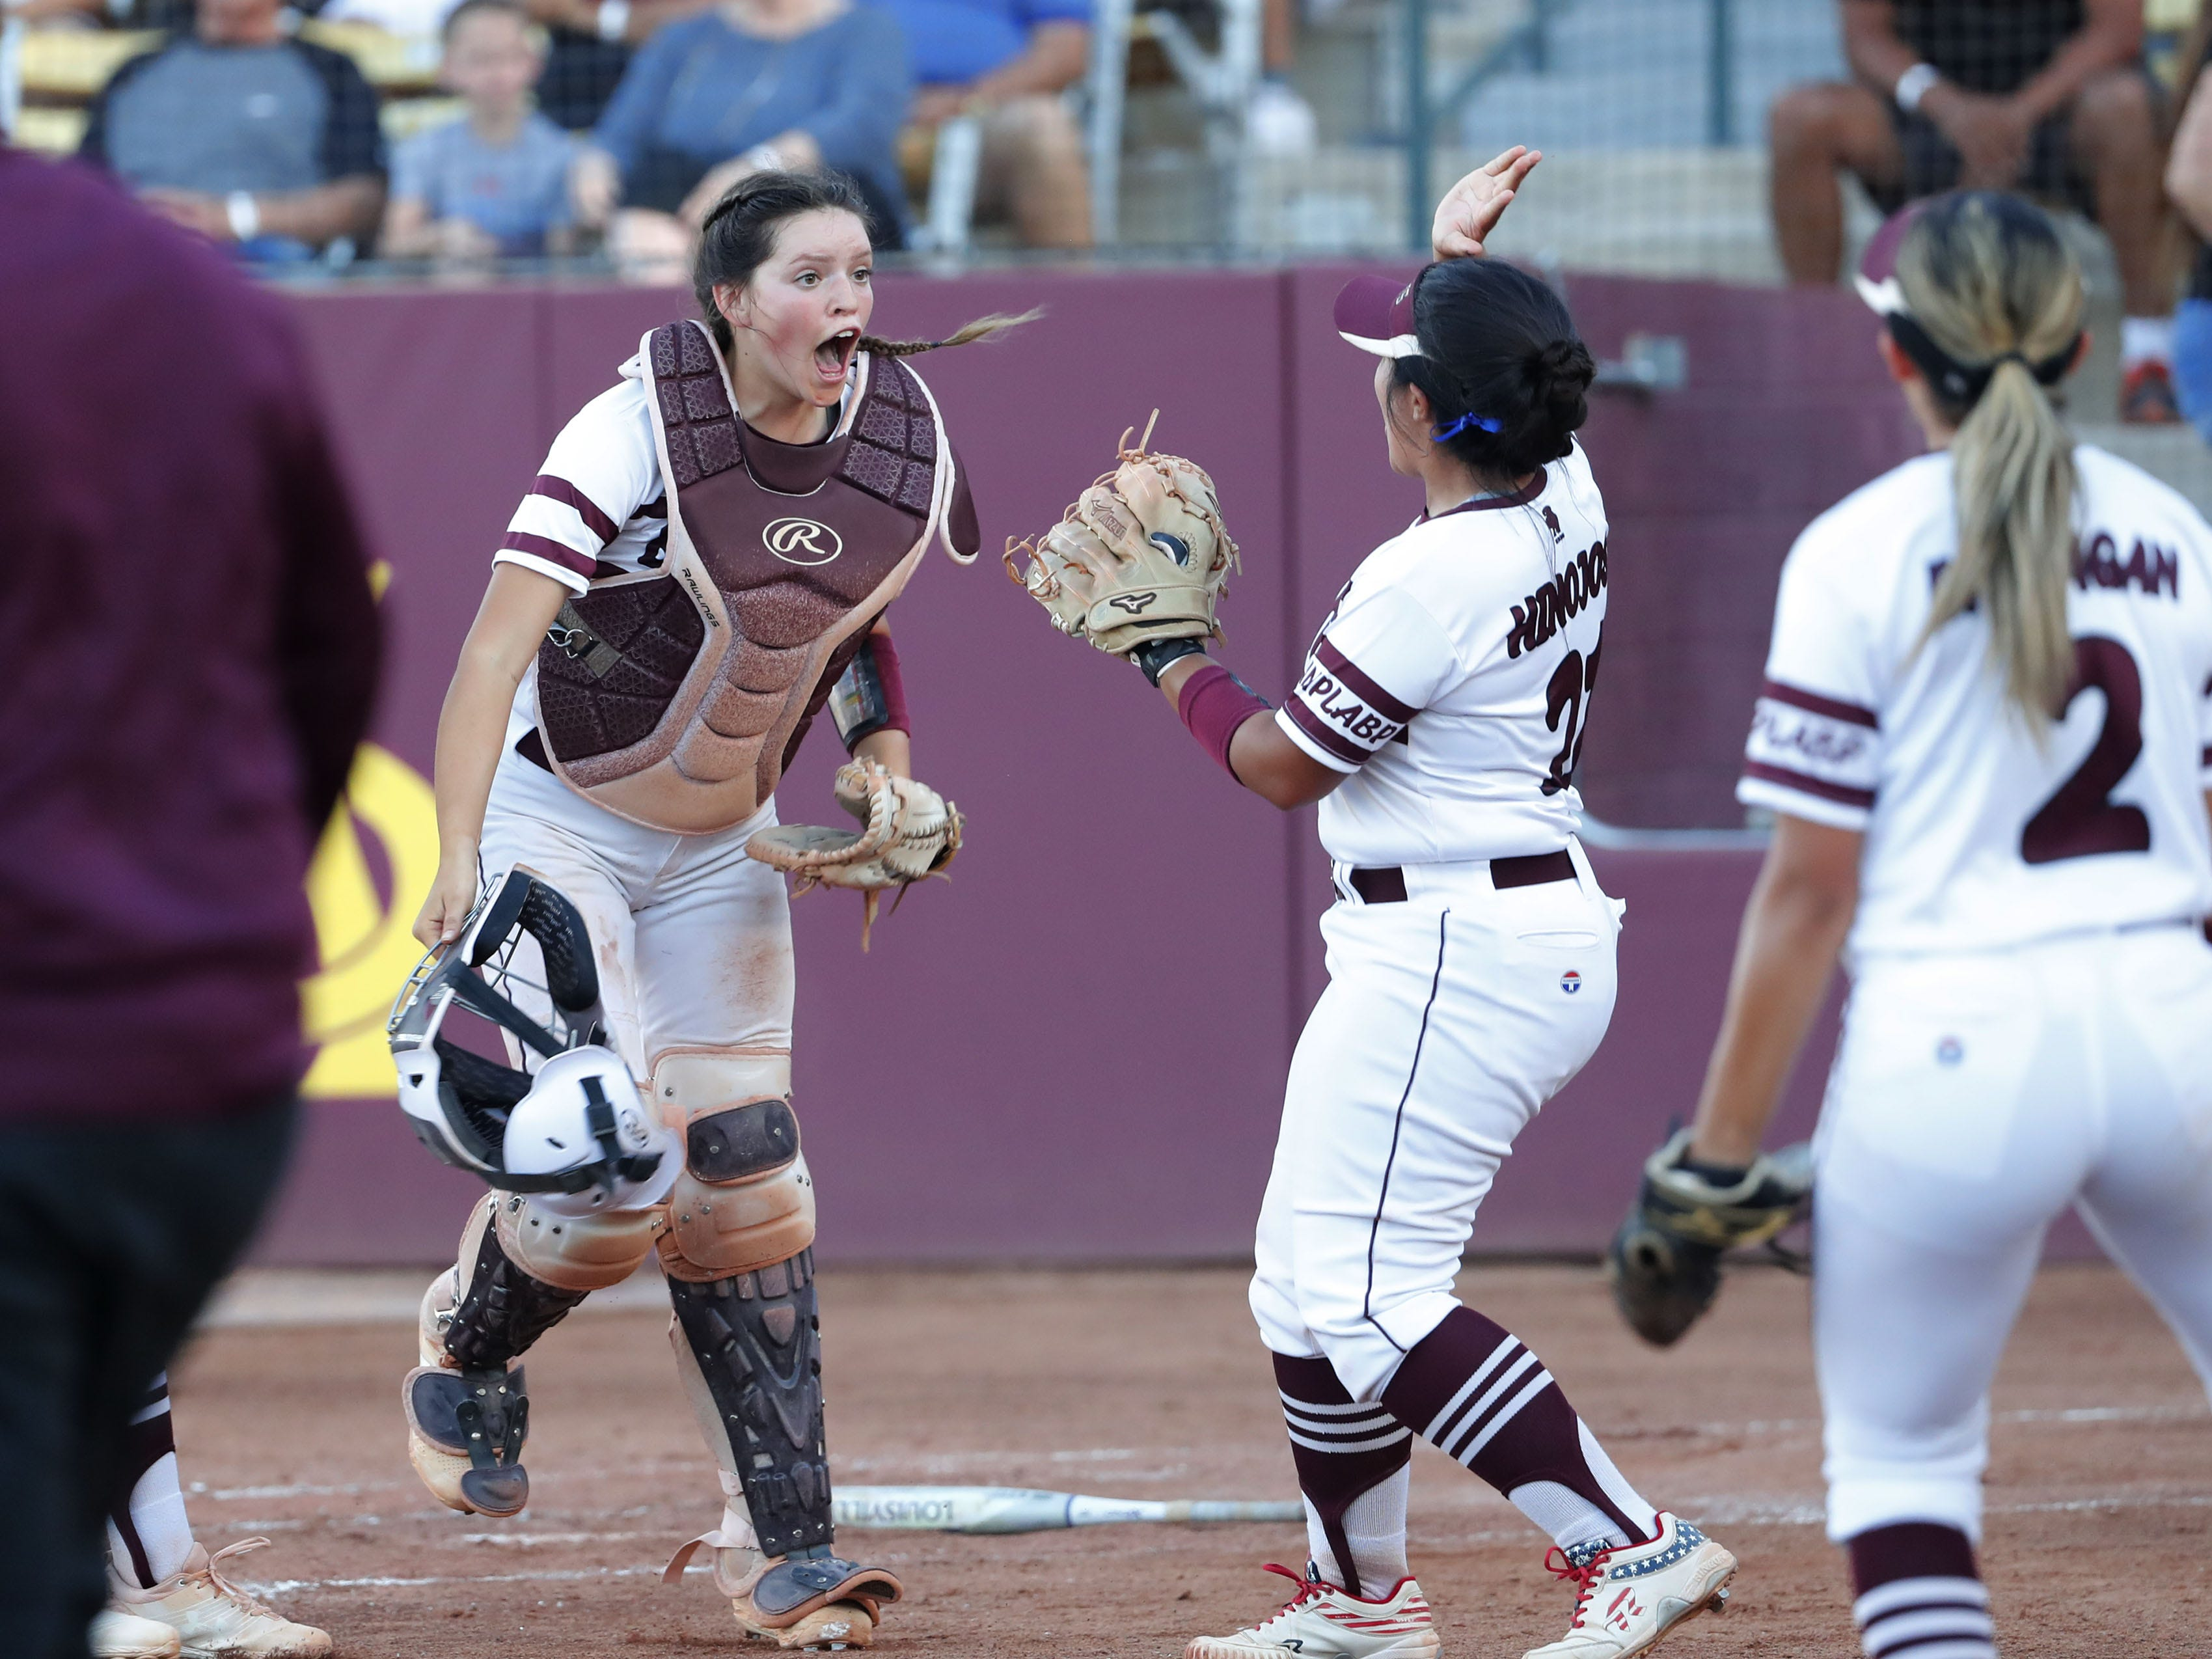 Ray catcher Tara Loroña (13) celebrates an out play at home with pitcher Daniella Hinojos (21) against Superior during the 1A softball state championship game in Tempe May 6, 2019.